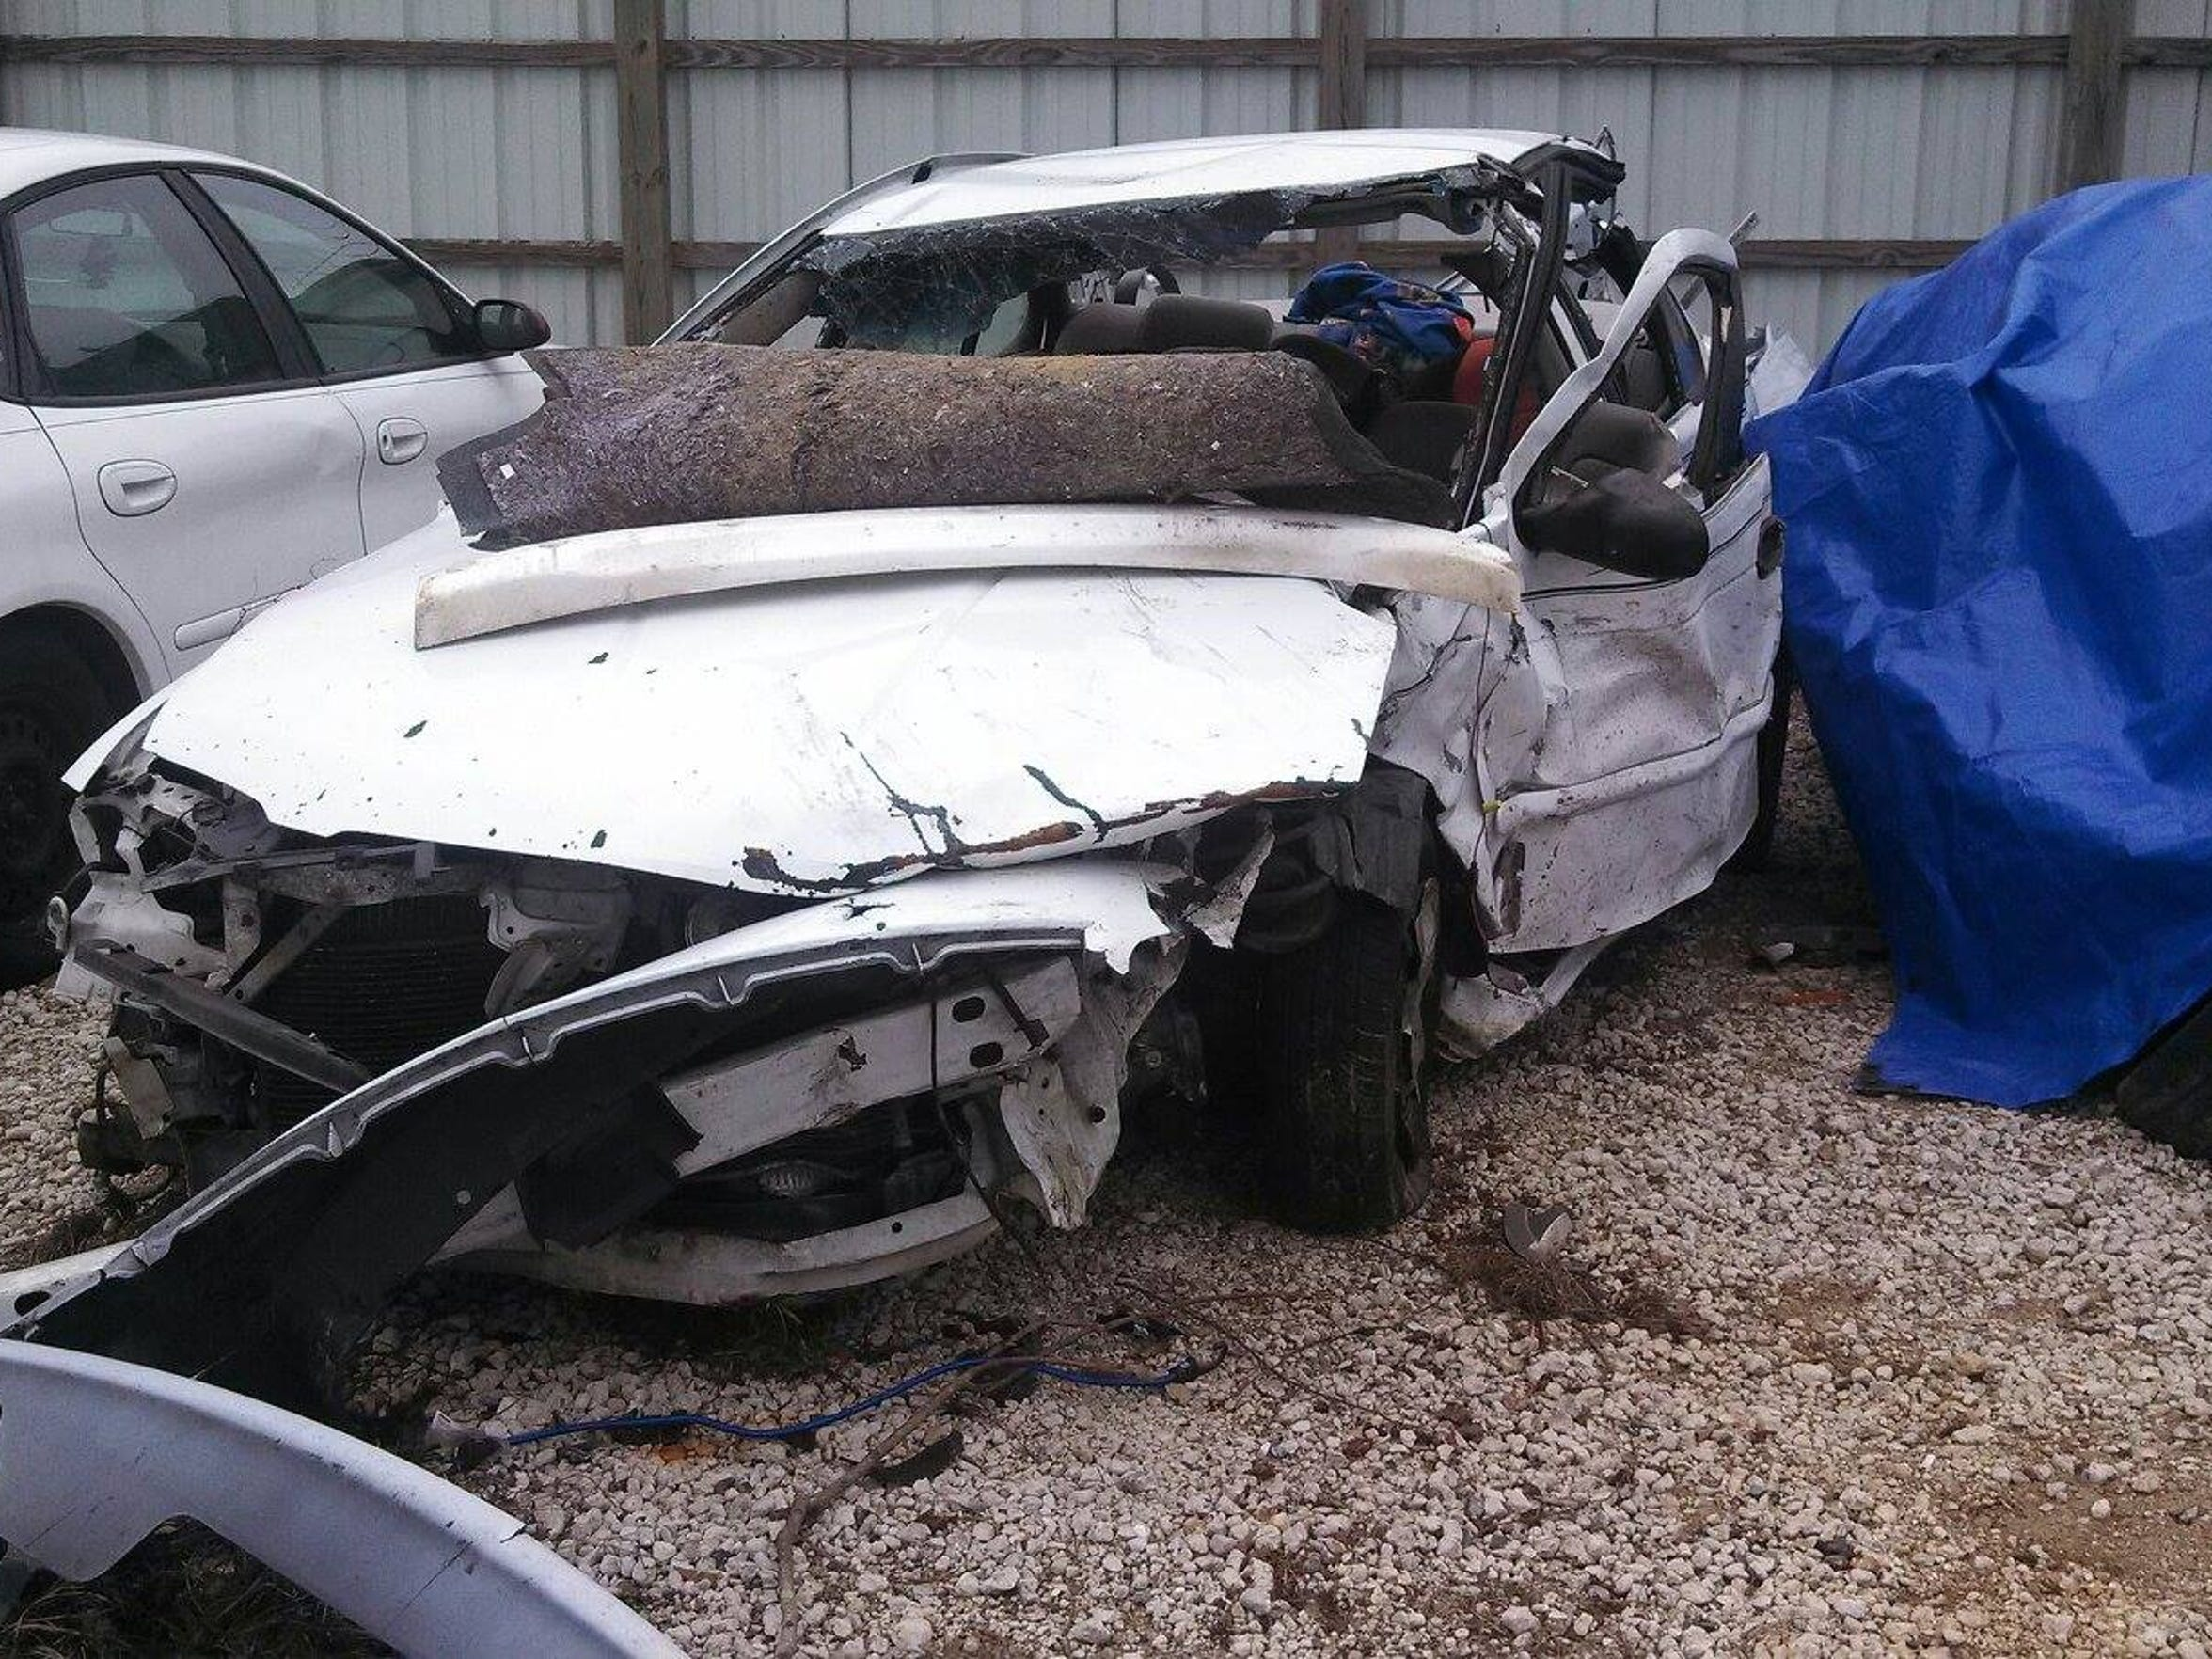 Cameron was ejected from this vehicle after his mother's